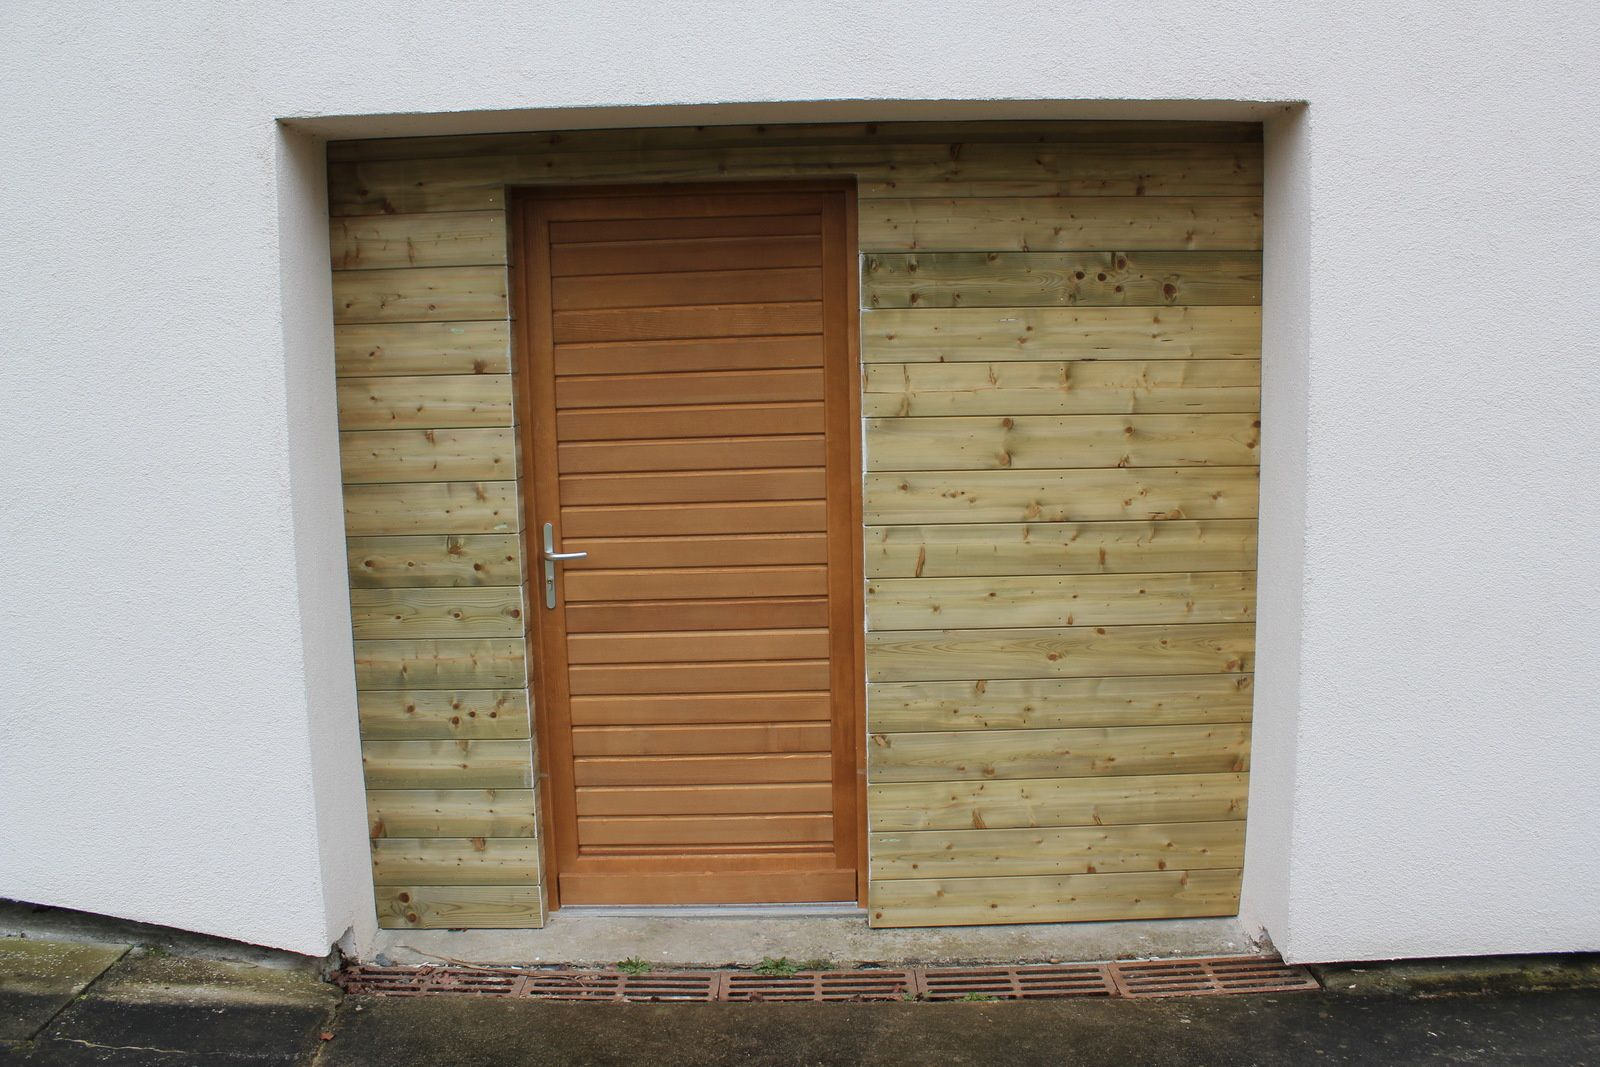 Remplacement porte de garage wt84 jornalagora for Porte de garage weigerding